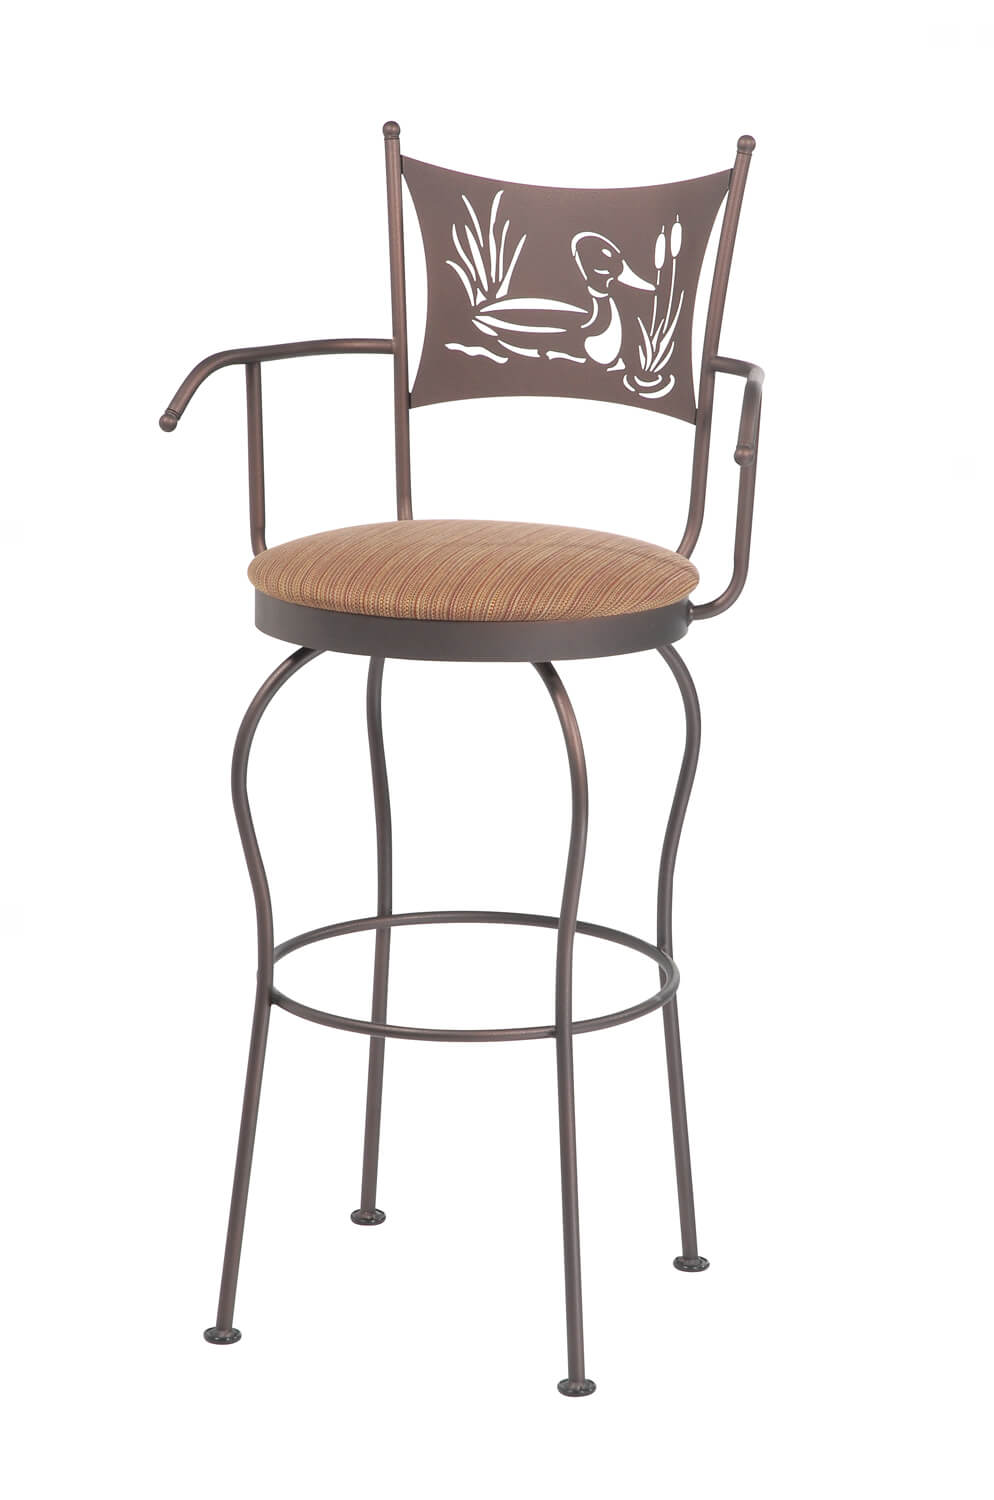 Trica Art Collection Swivel Stool W Arms Nature